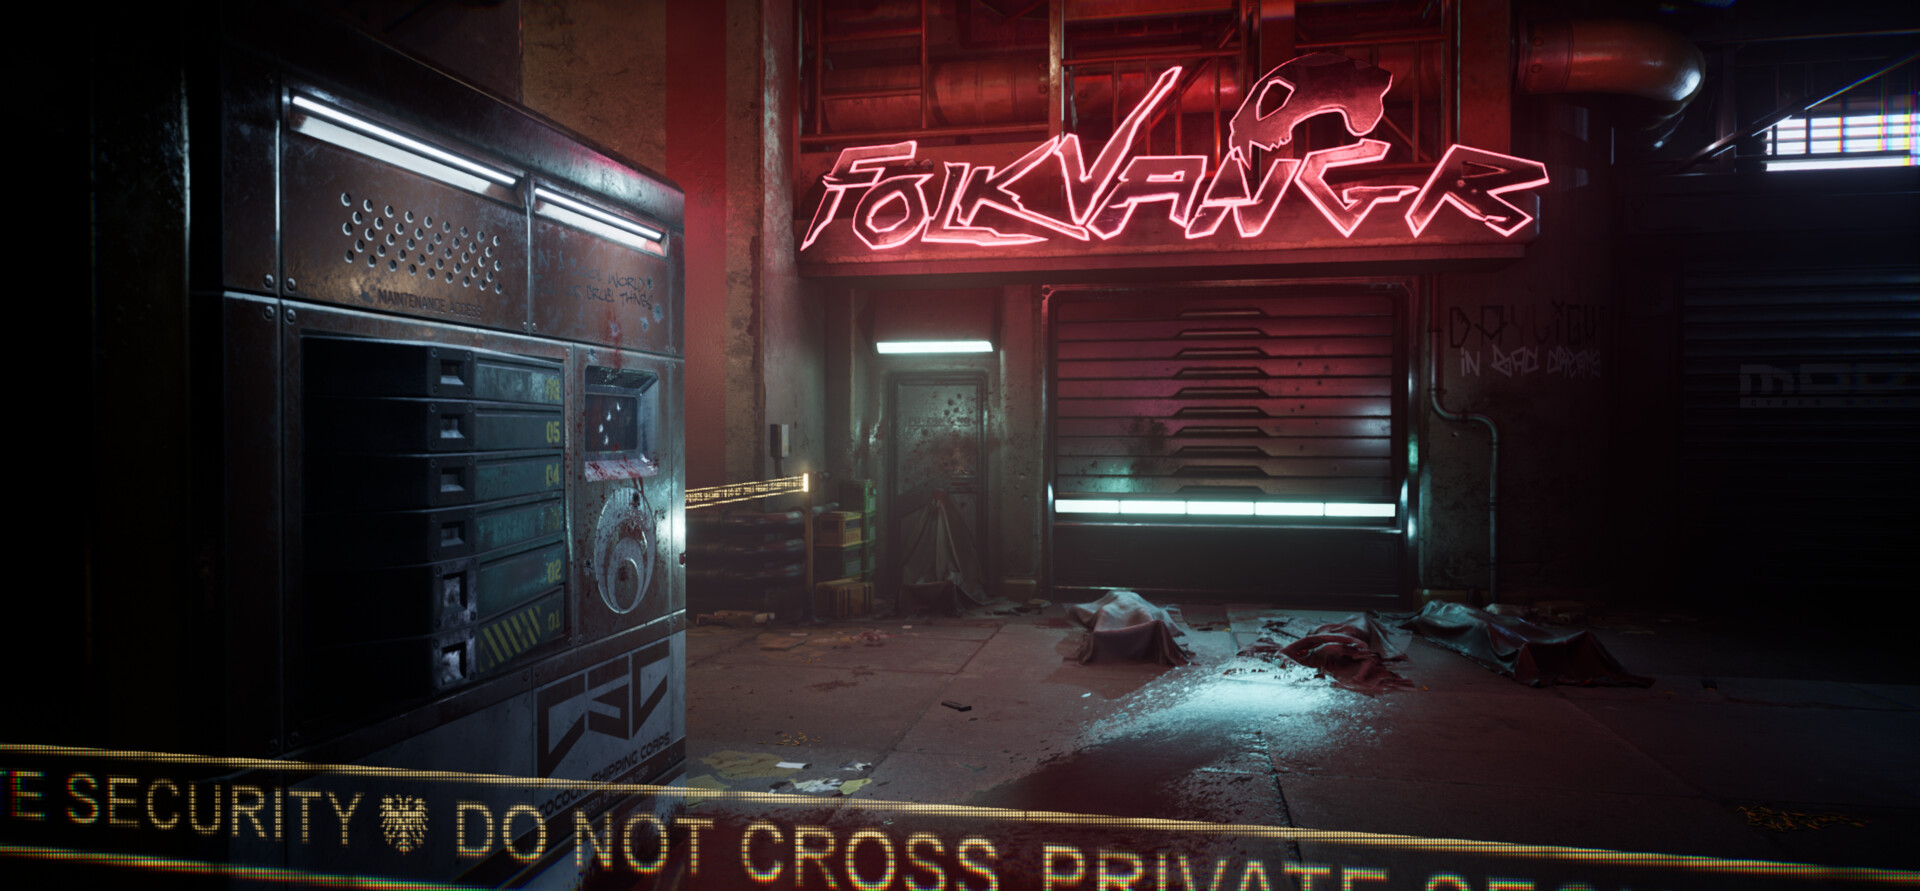 Folkvangr, Cyberpunk Crime Scene by Travis O'Connor